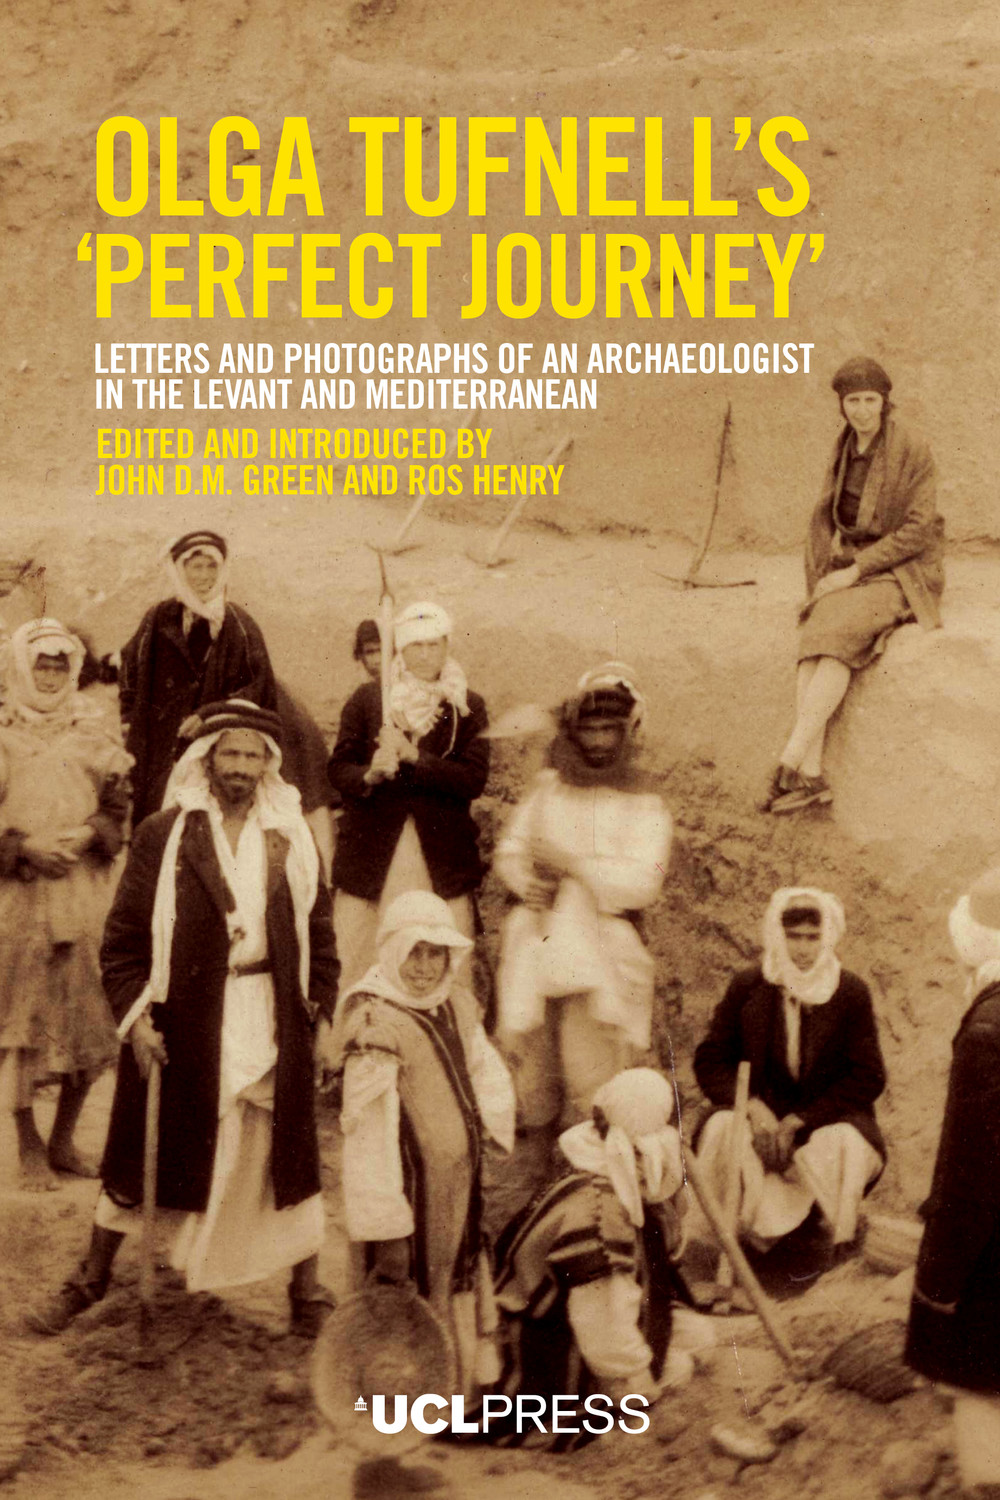 Olga Tufnell's 'Perfect Journey'